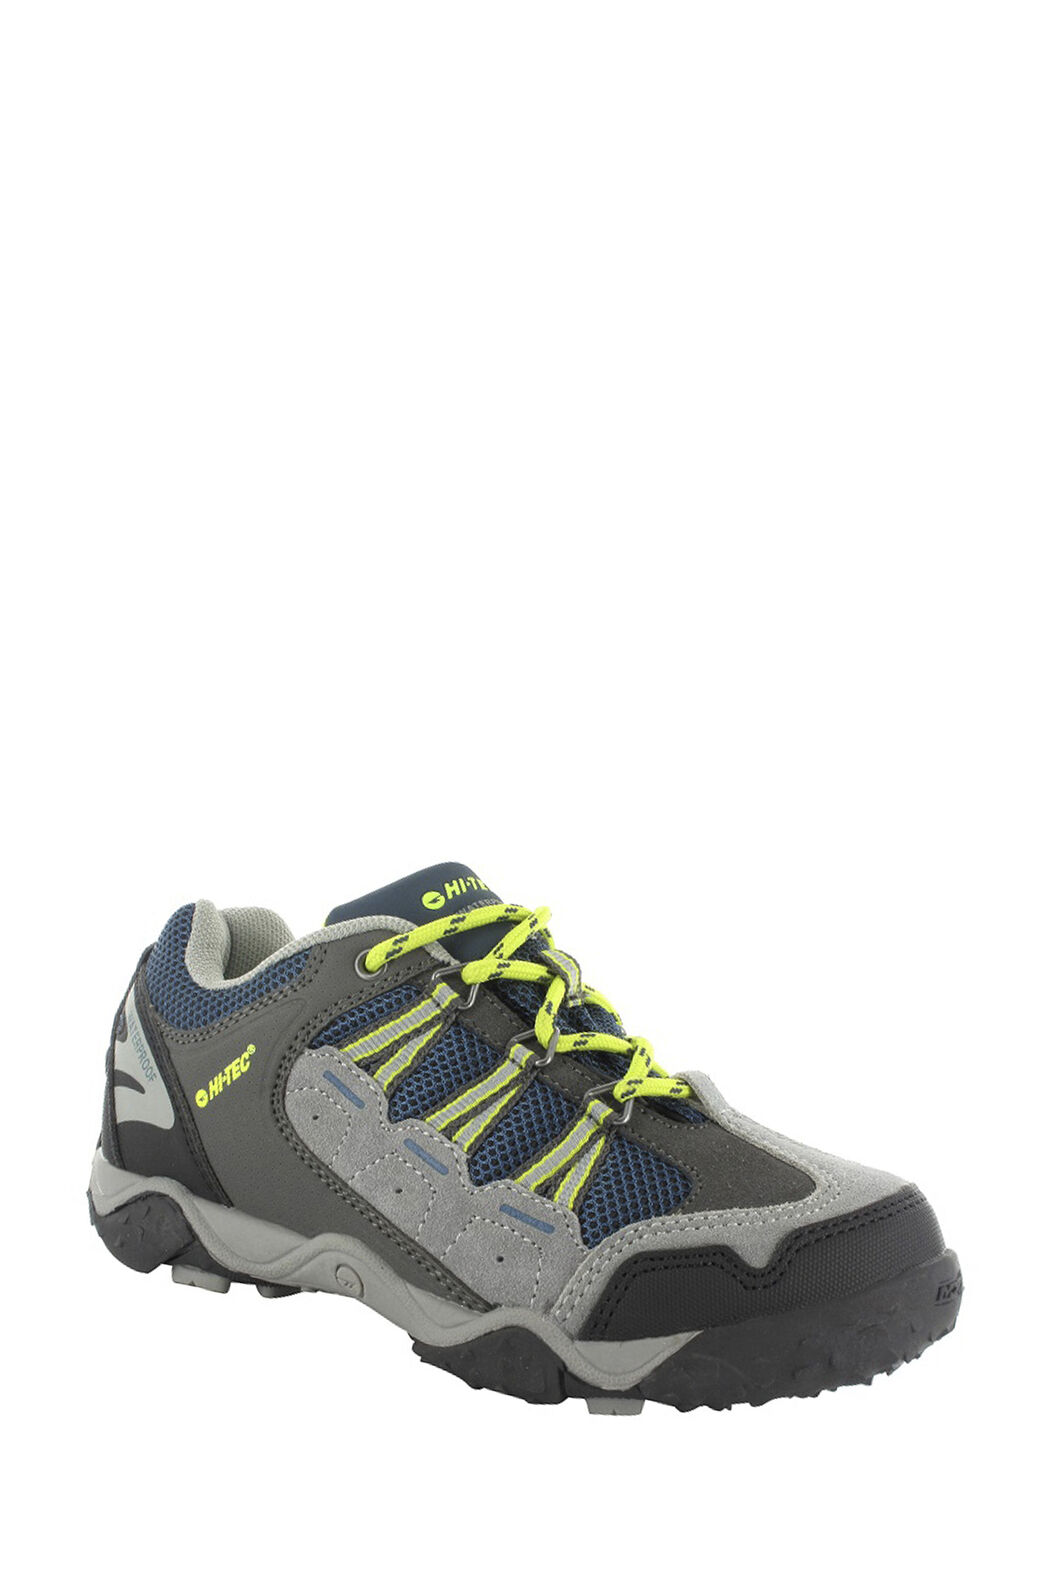 Hi-Tec Forza Low WP Shoes — Kids', Cool Grey/Majolica/Limoncello, hi-res